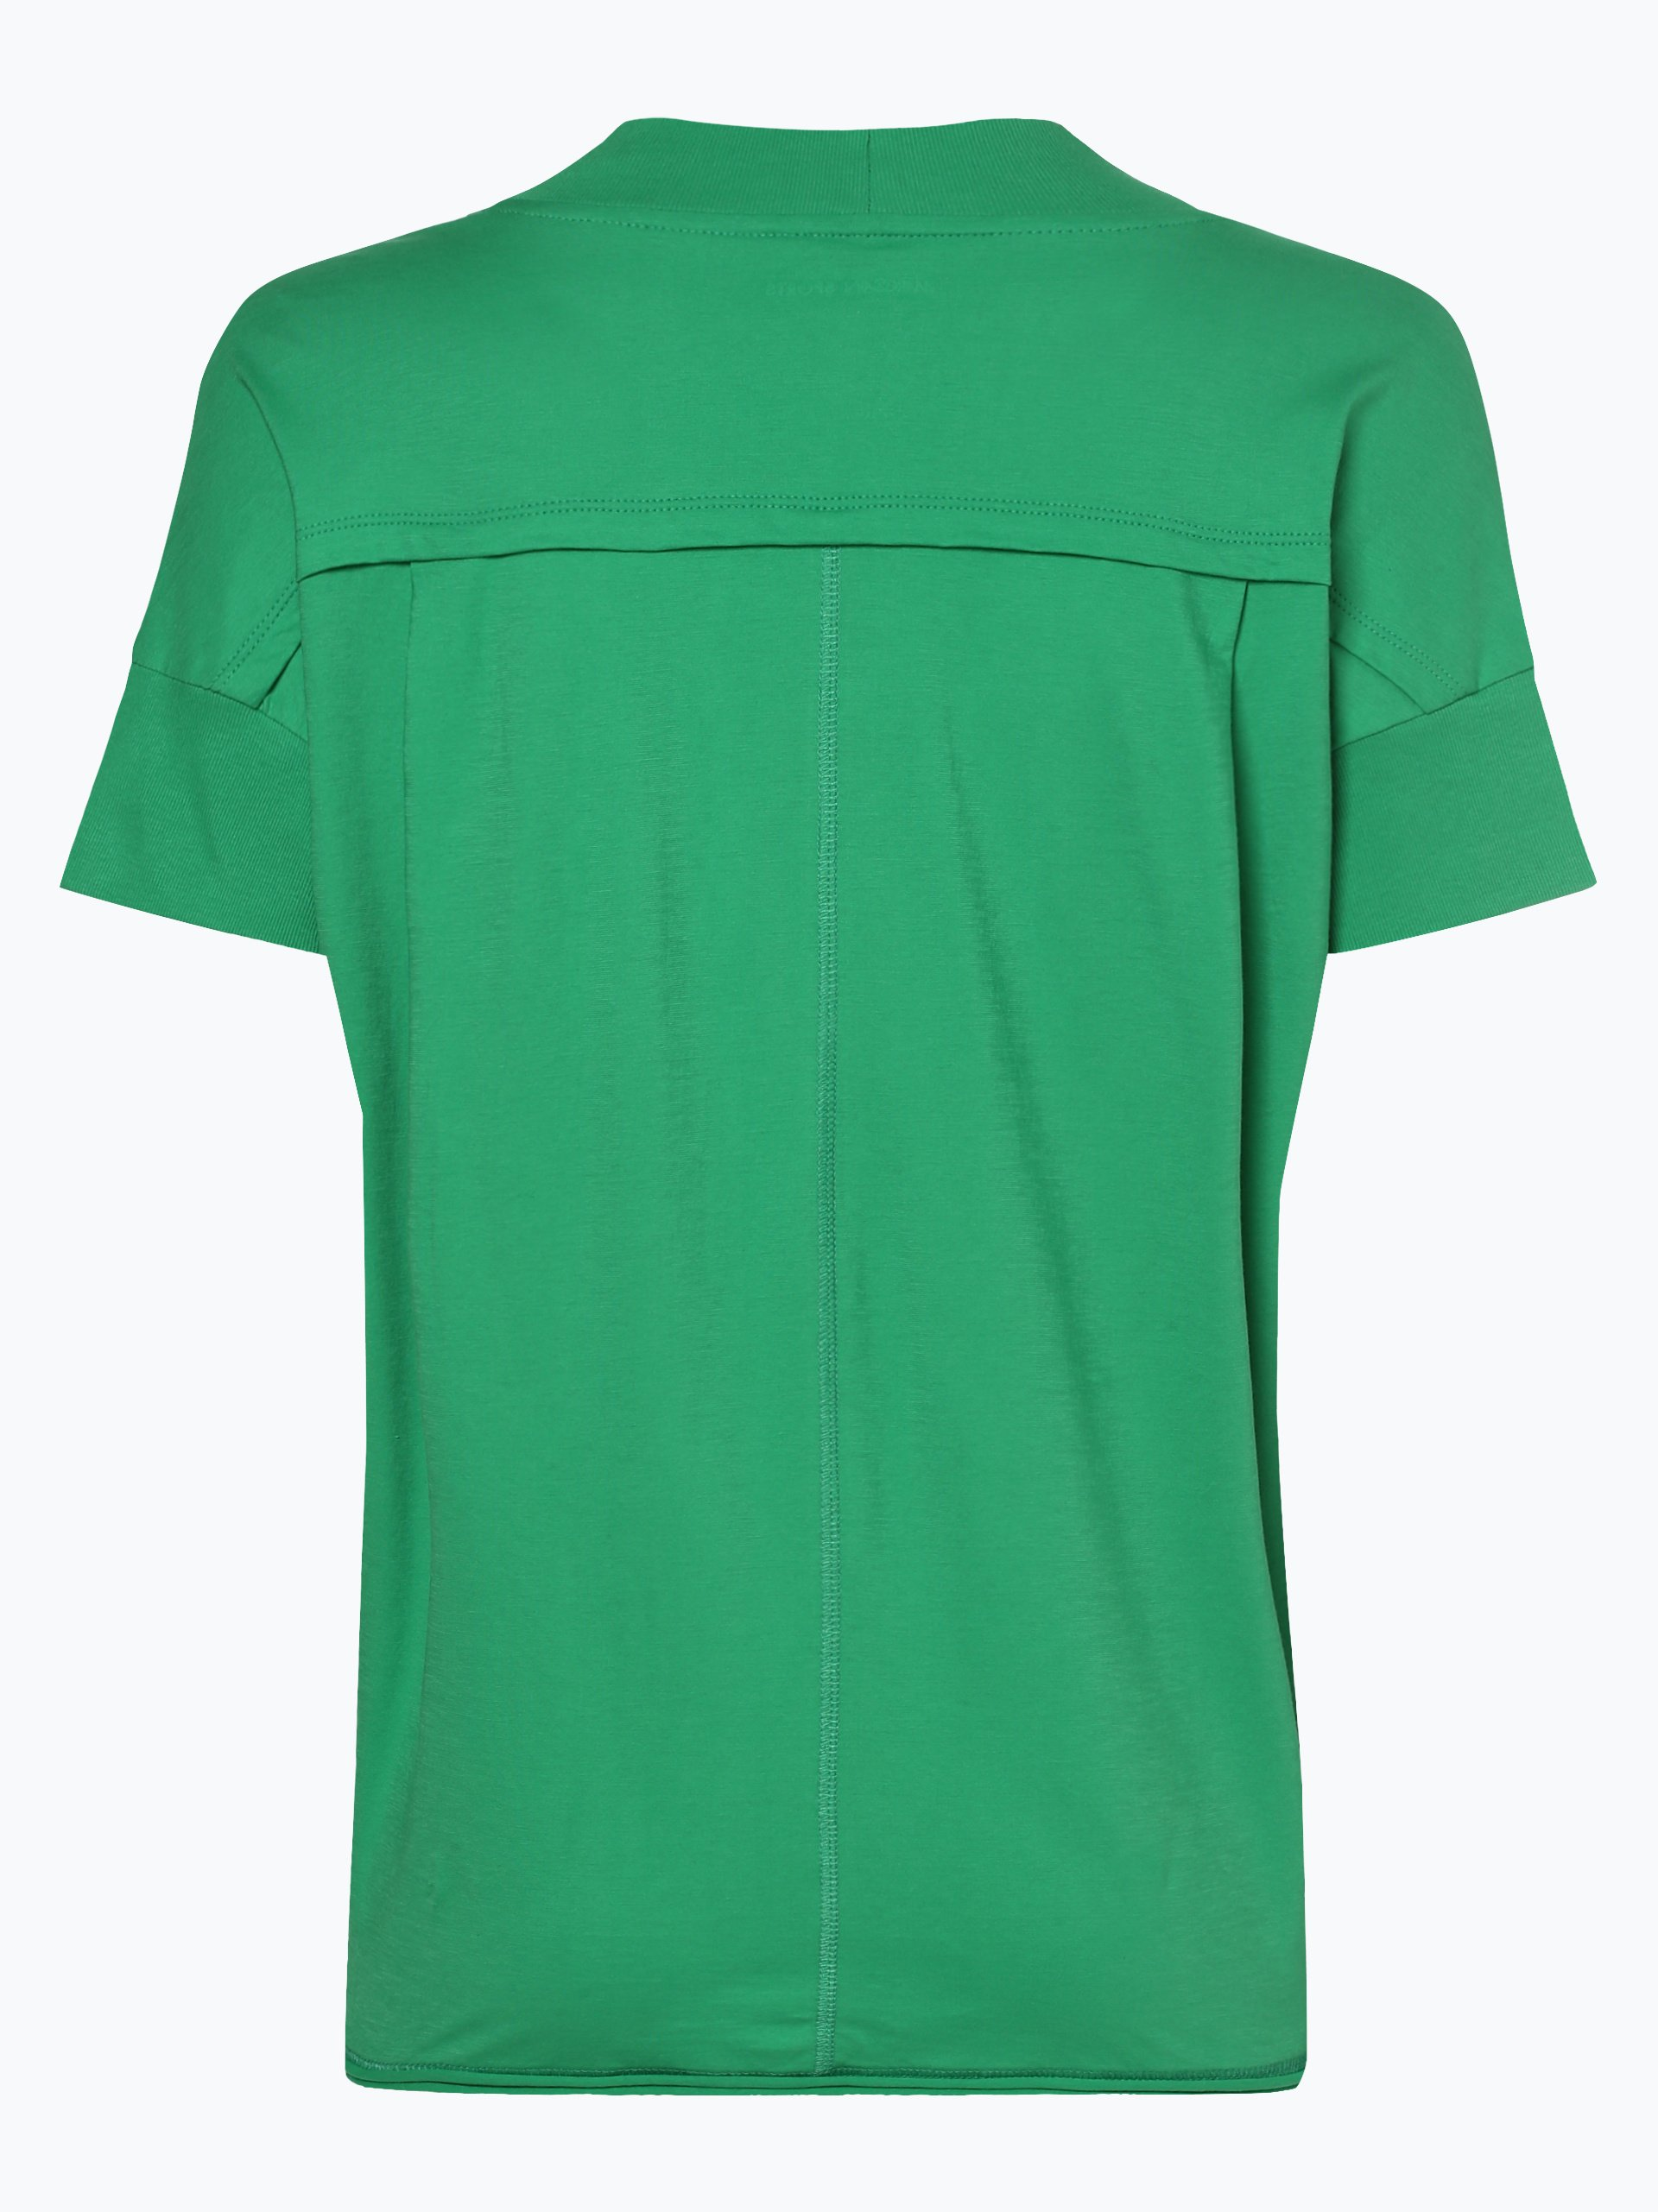 Marc Cain Sports Damen T-Shirt